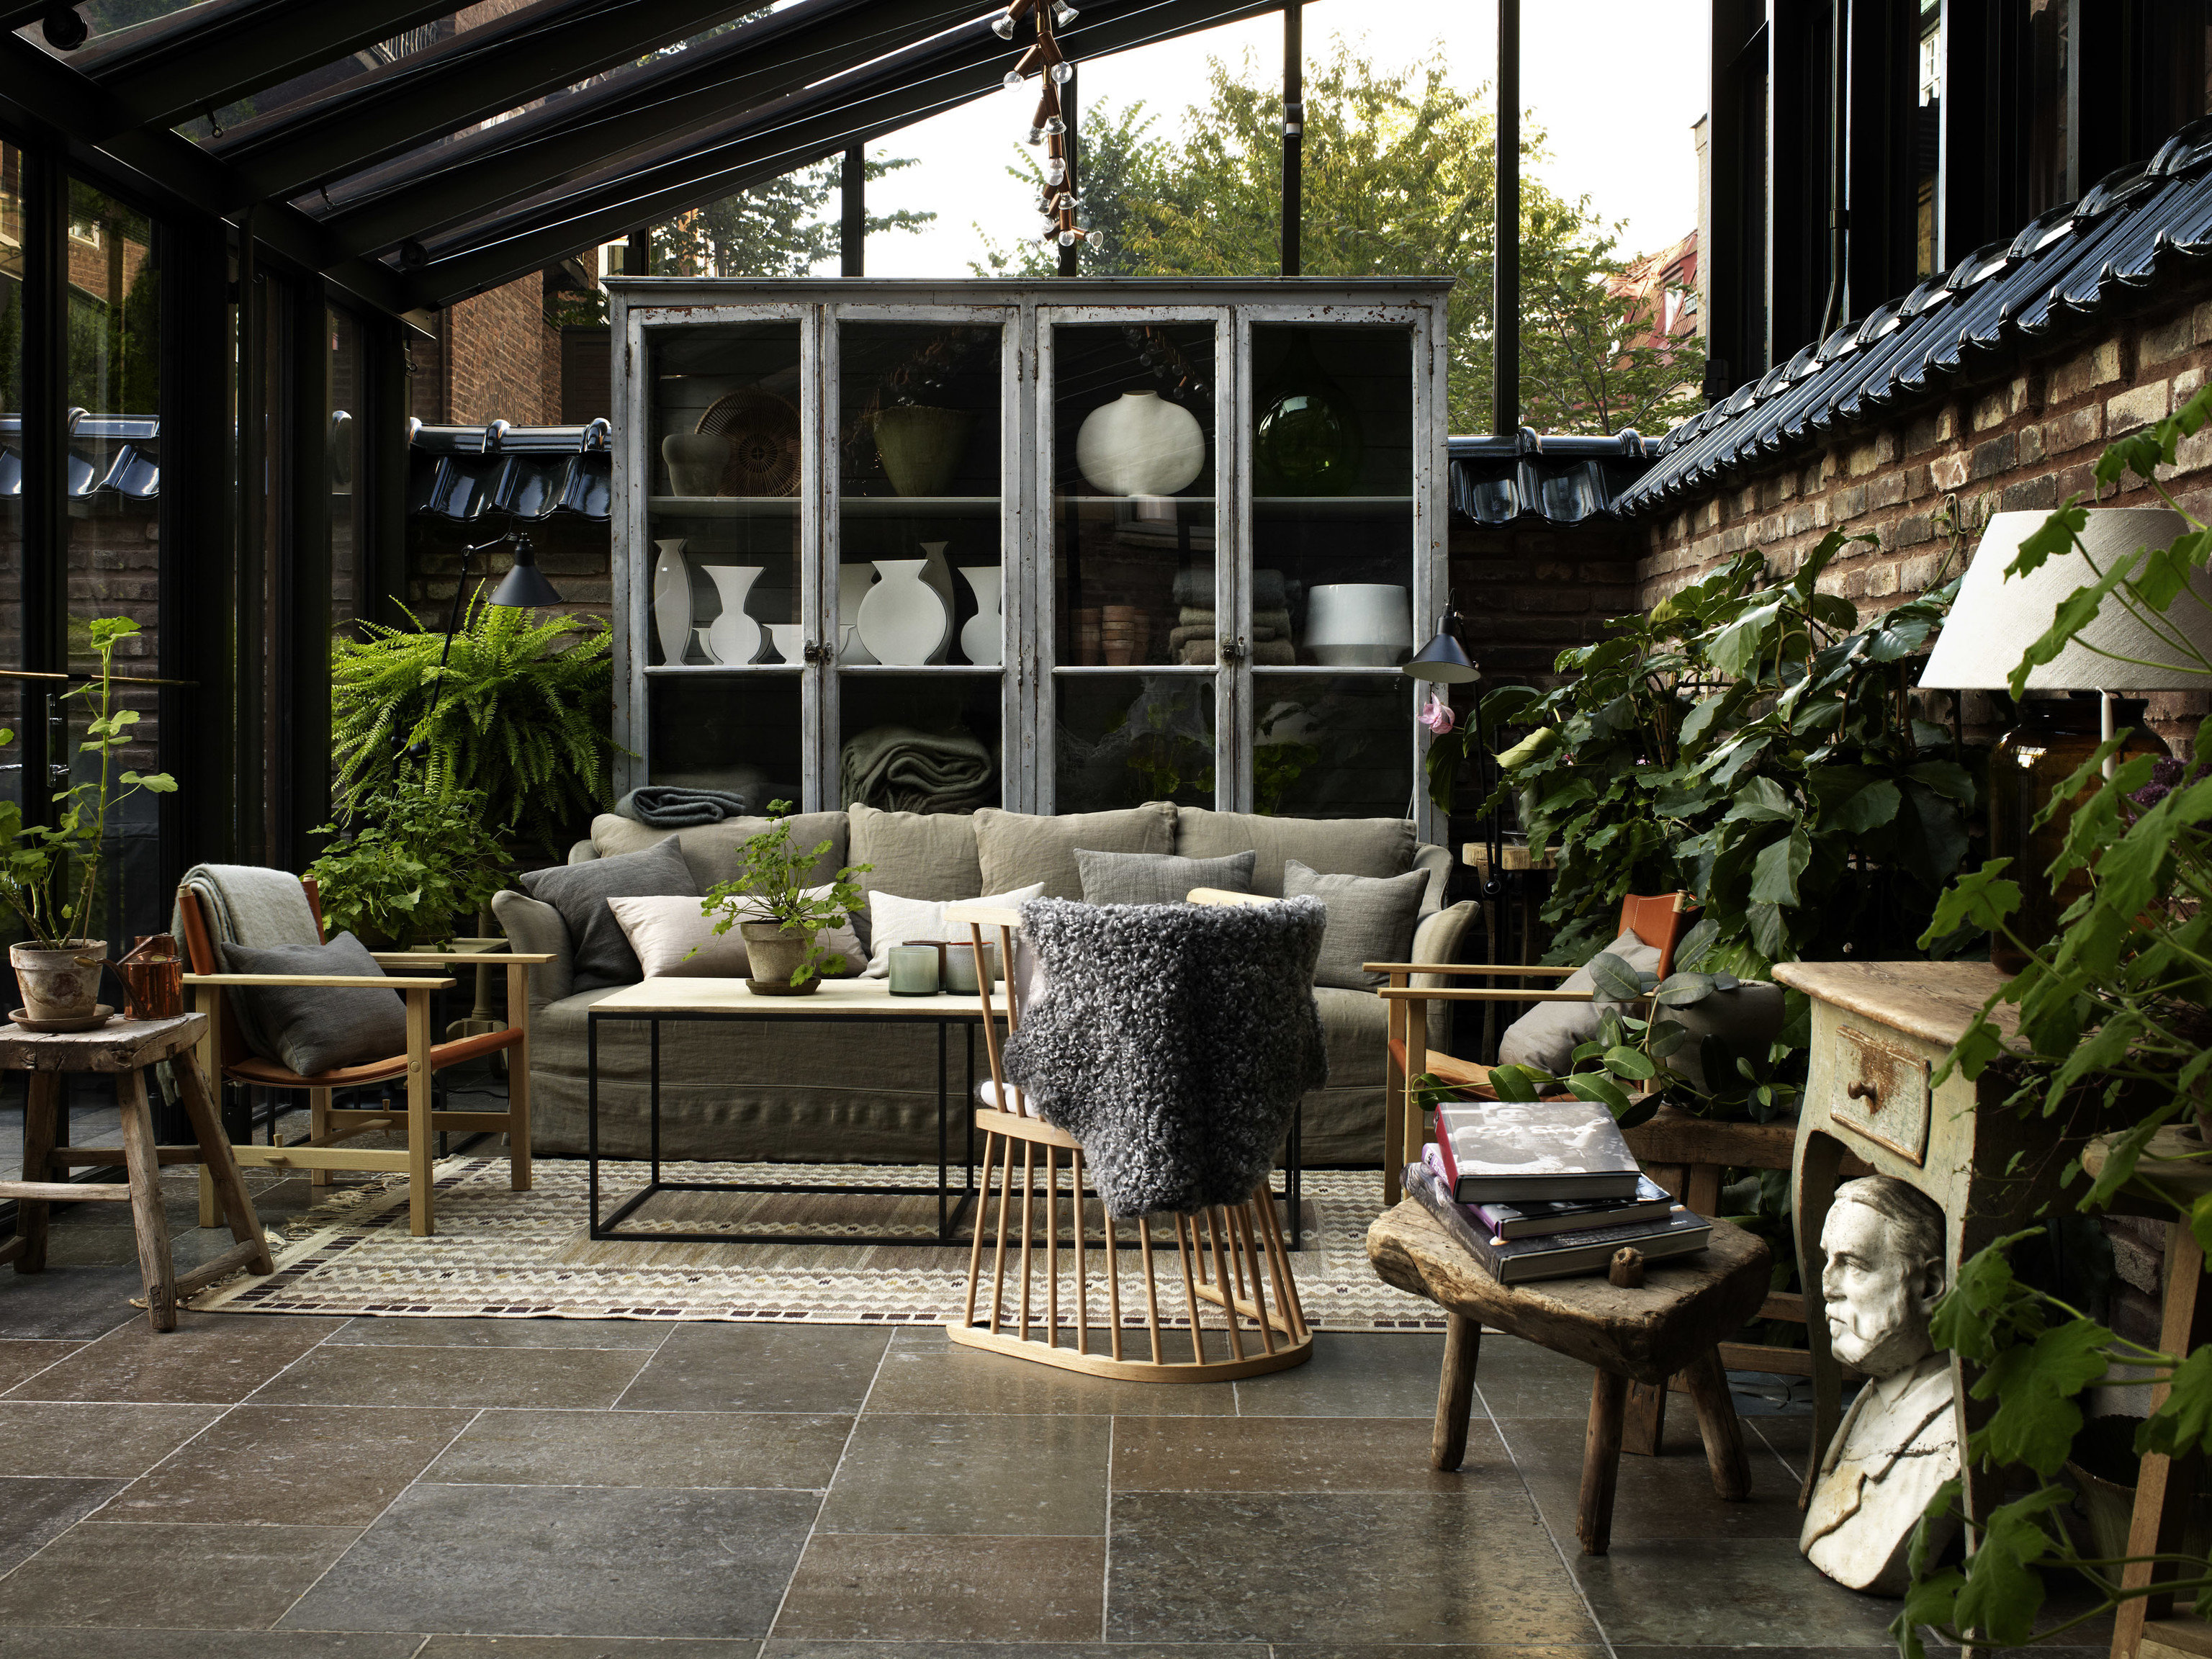 Design Hotels Stockholm Sweden building outdoor Patio Courtyard outdoor structure furniture plant window backyard interior design stone area